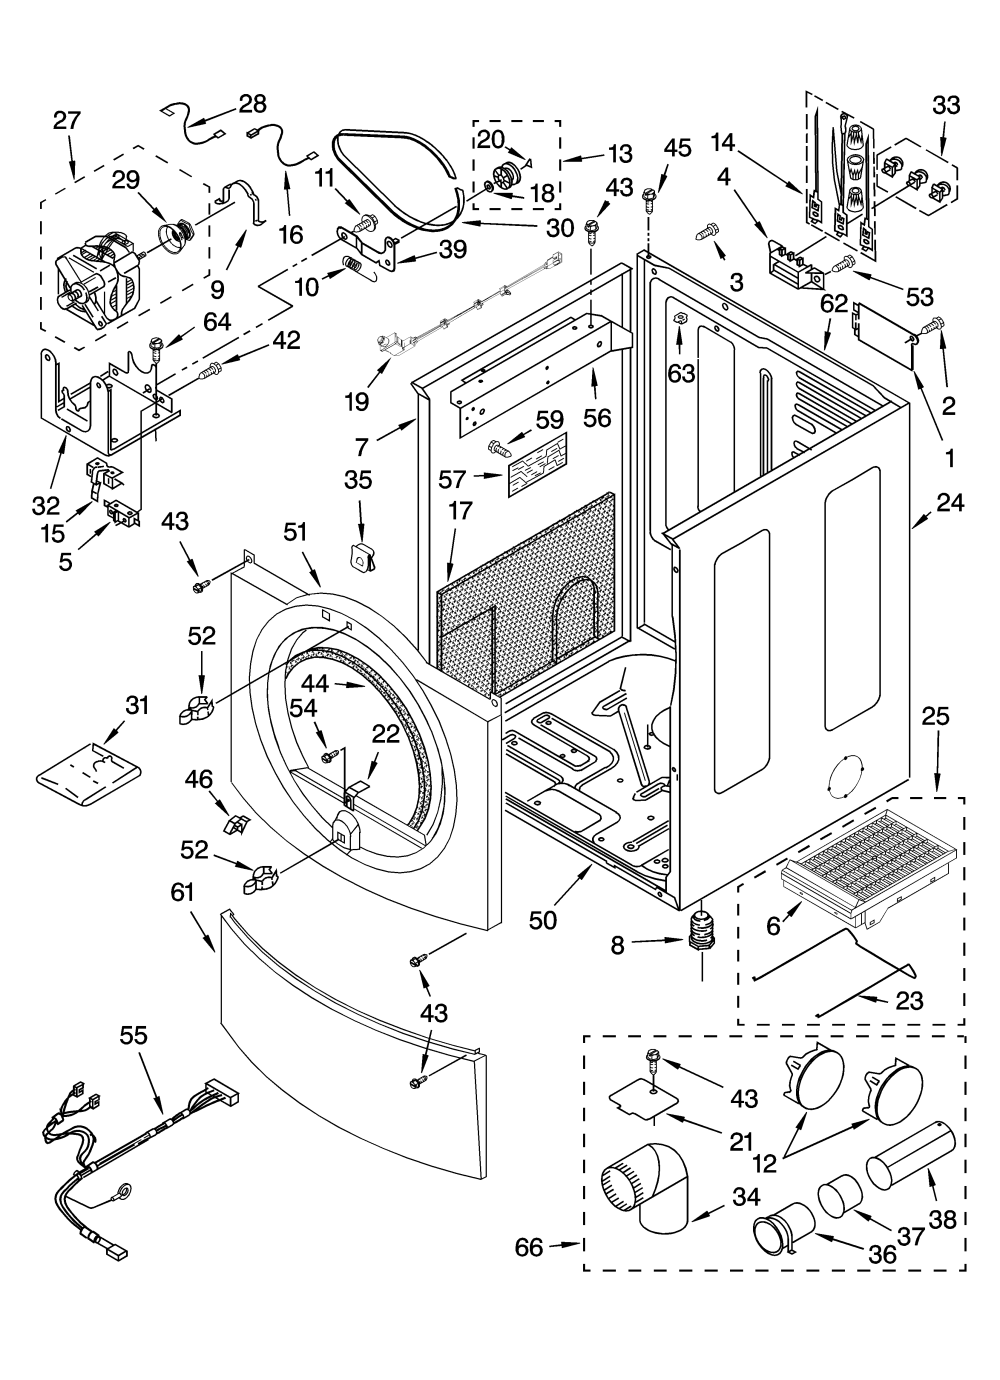 medium resolution of whirlpool duet washer parts diagram on whirlpool duet sport washermachine parts diagram besides whirlpool cabrio dryer